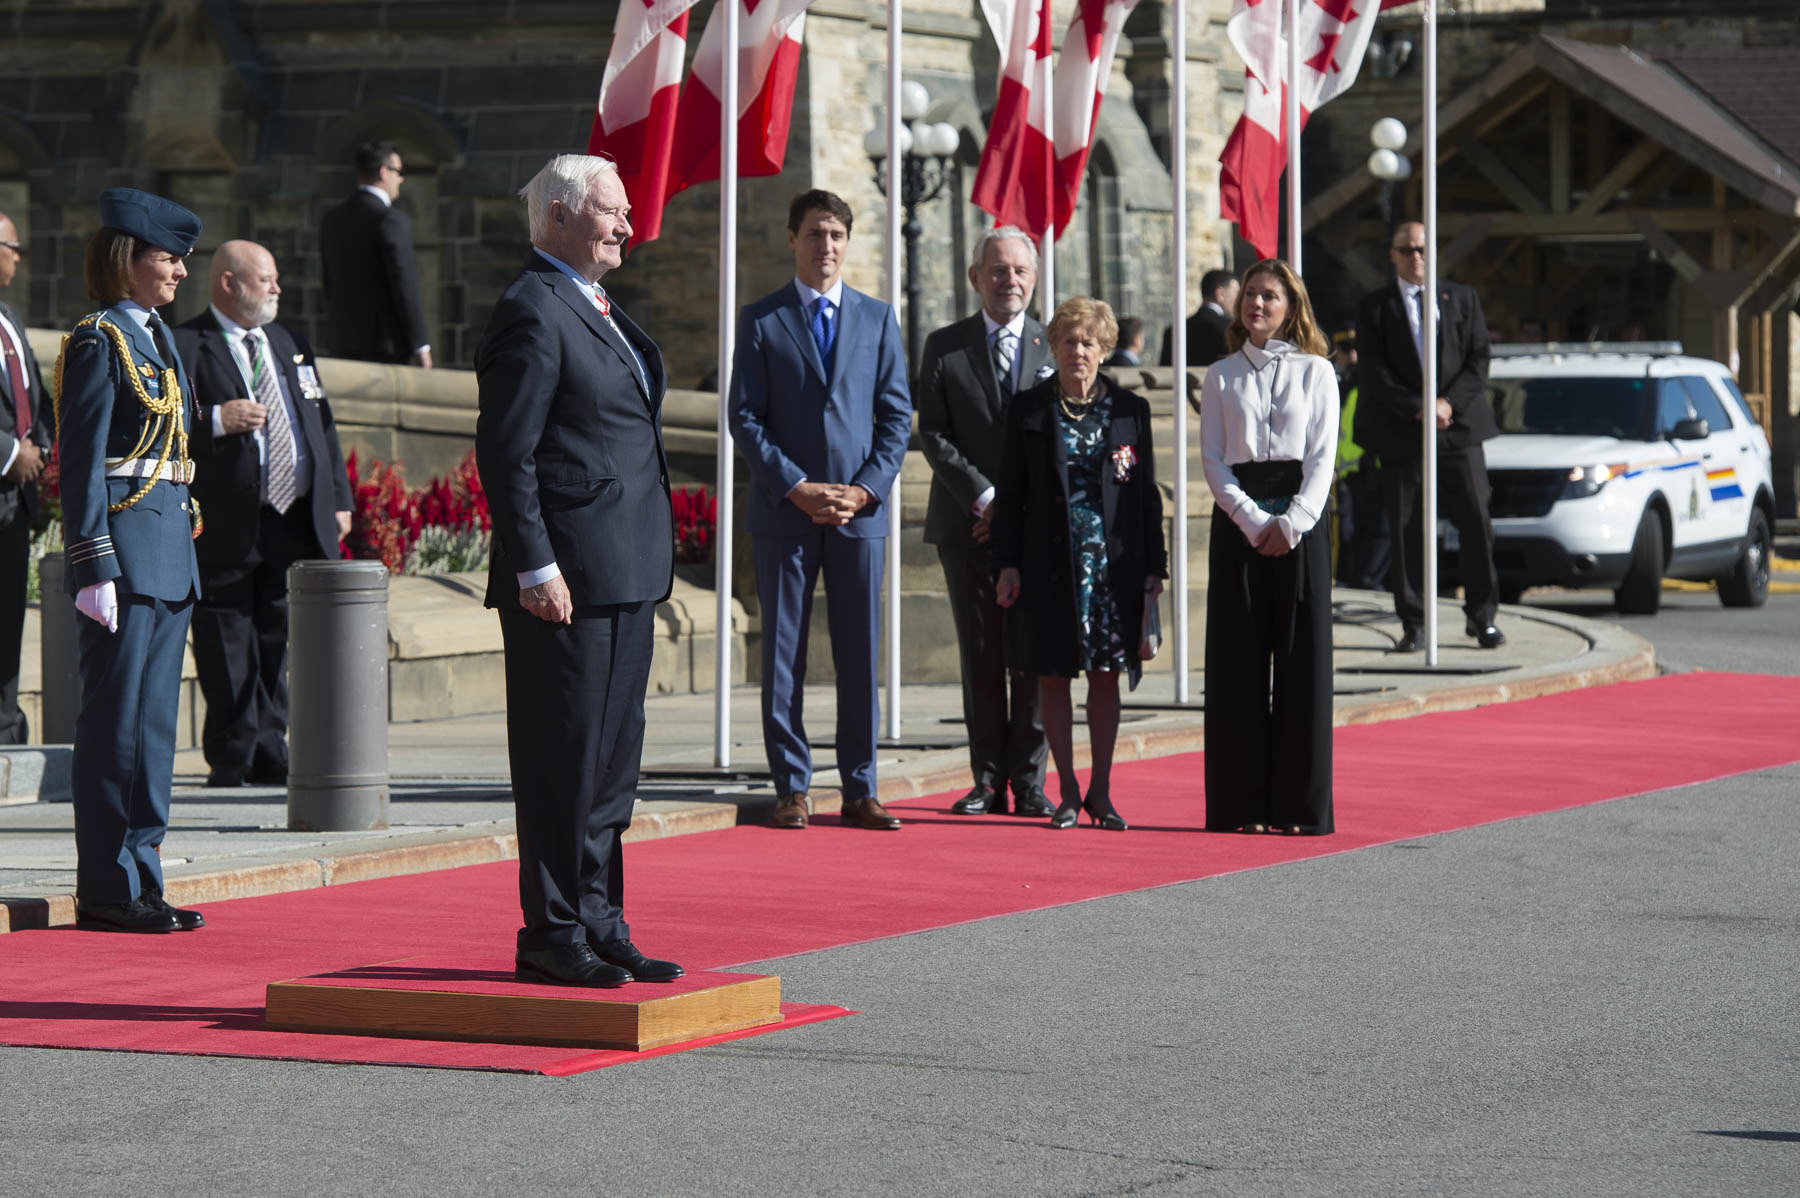 Son Excellence le très honorable David Johnston, le 28e gouverneur général du Canada, a reçu un salut royal de la garde d'honneur des Forces armées canadiennes à son arrivée sur la Colline du Parlement.